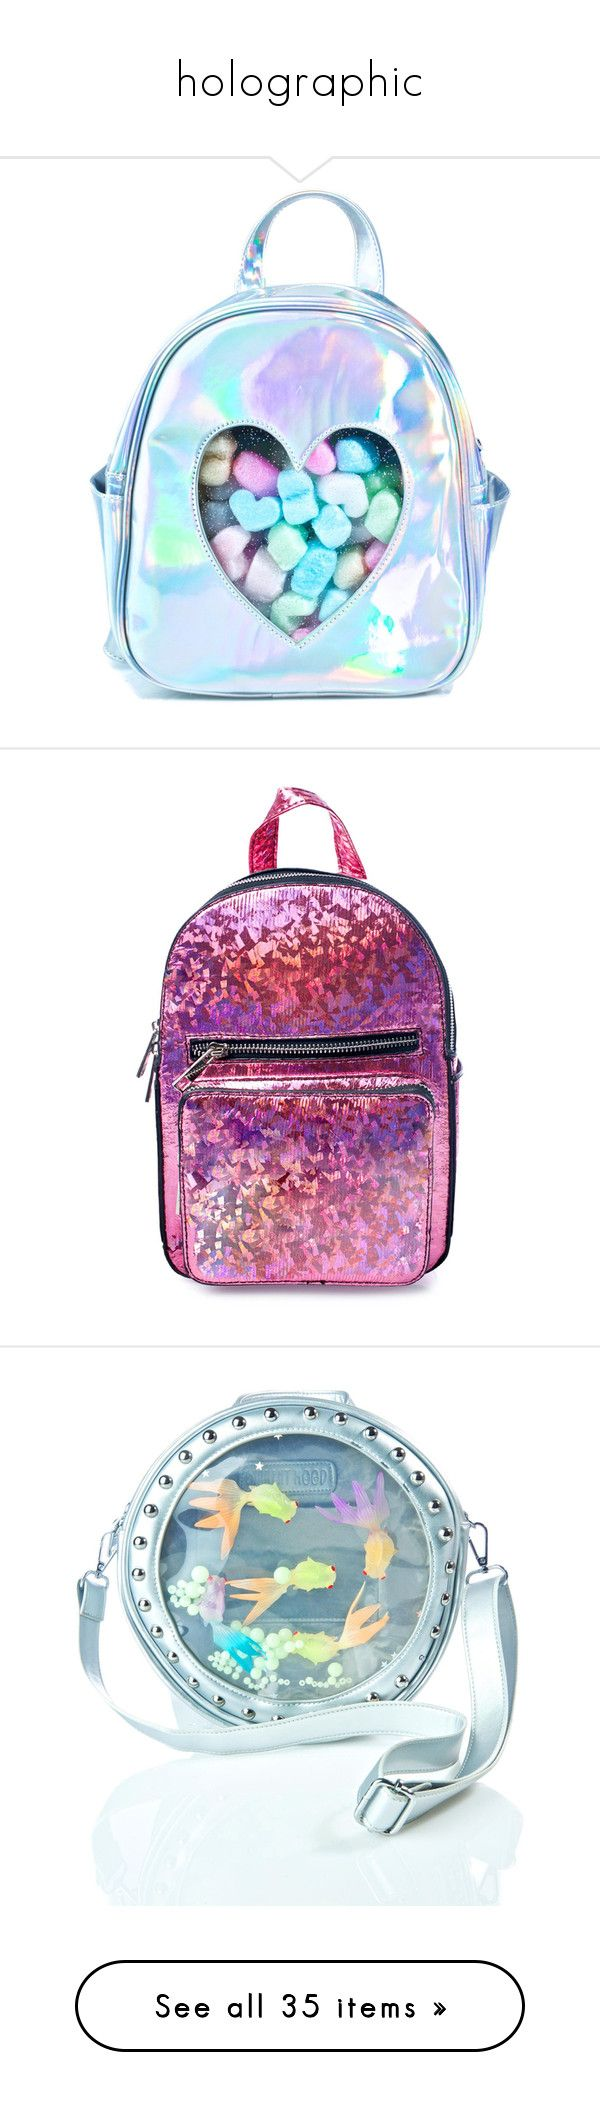 """""""holographic"""" by lazerk1tty ❤ liked on Polyvore featuring bags, backpacks, accessories, silver holographic backpack, clear transparent bag, clear backpacks, blue bag, see through backpack, zip top bag and purple party bags"""